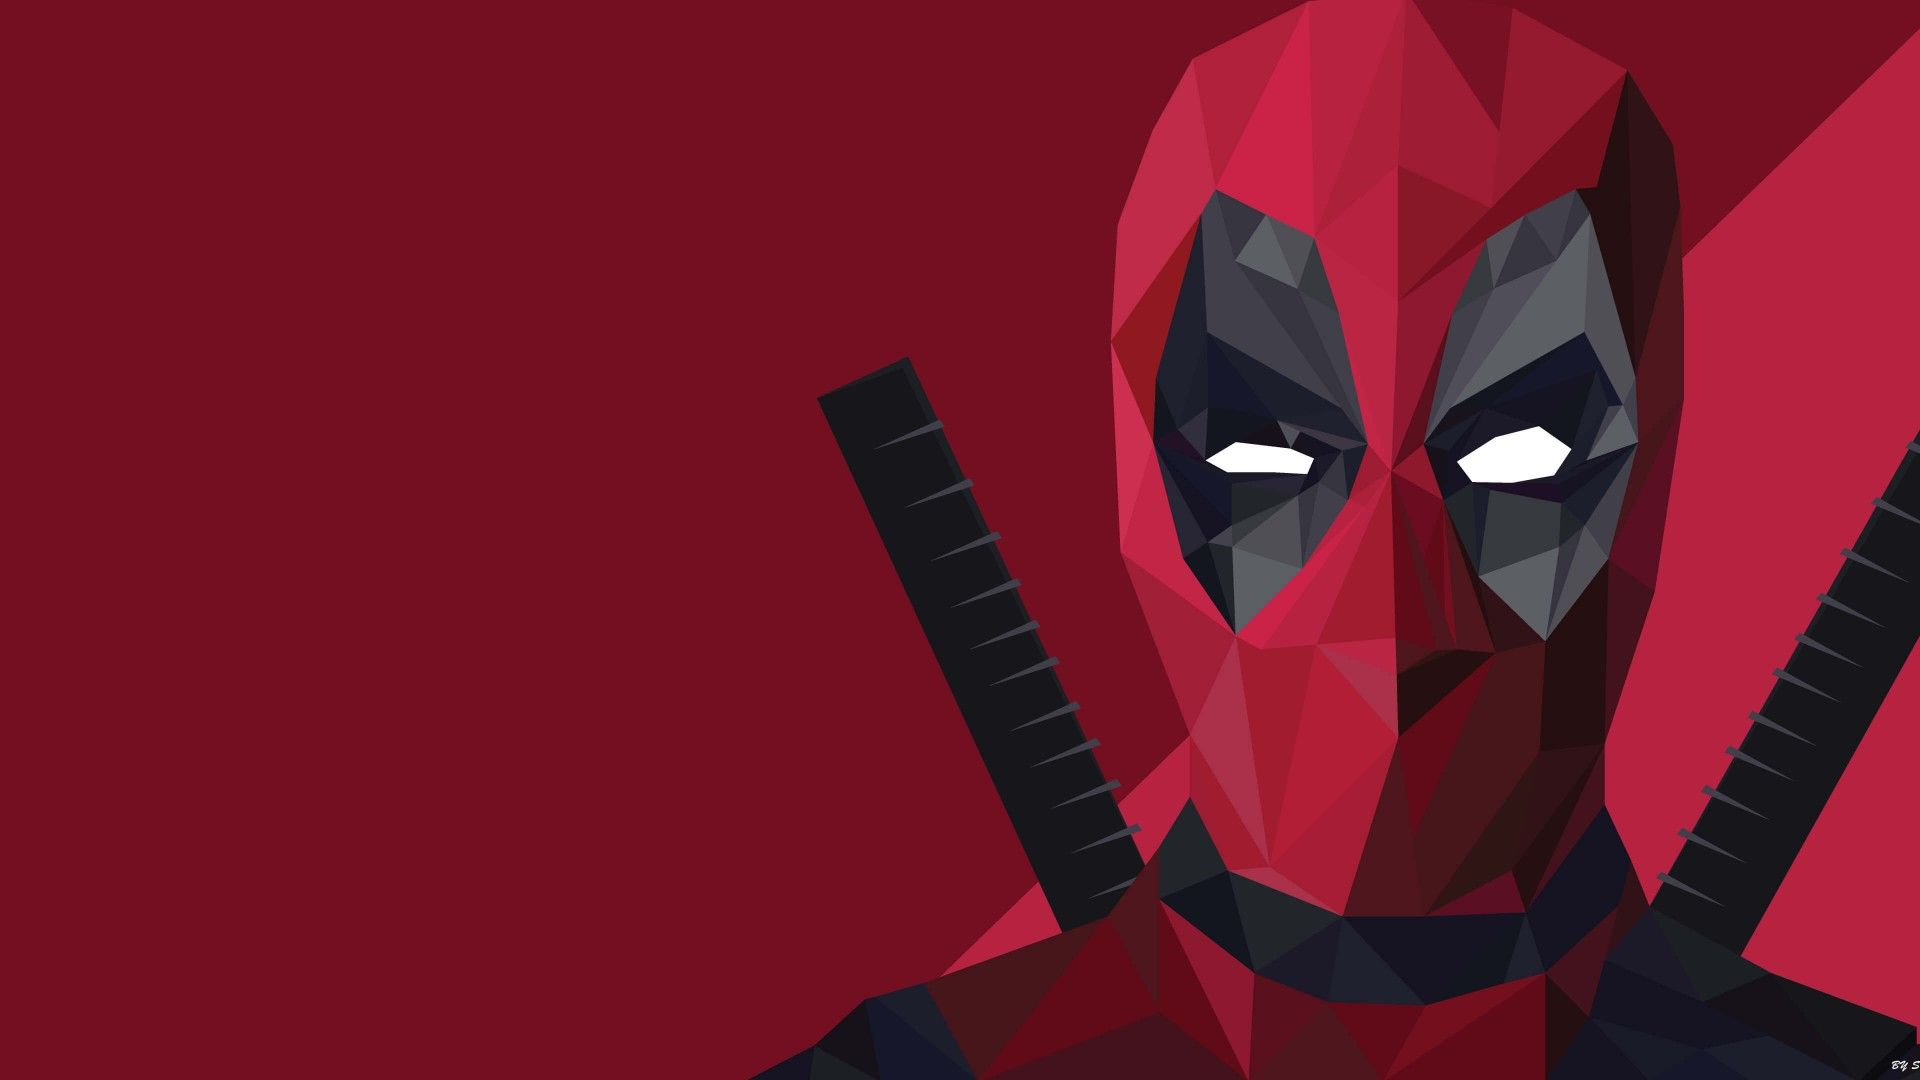 Deadpool Deadpool wallpaper desktop Deadpool wallpaper